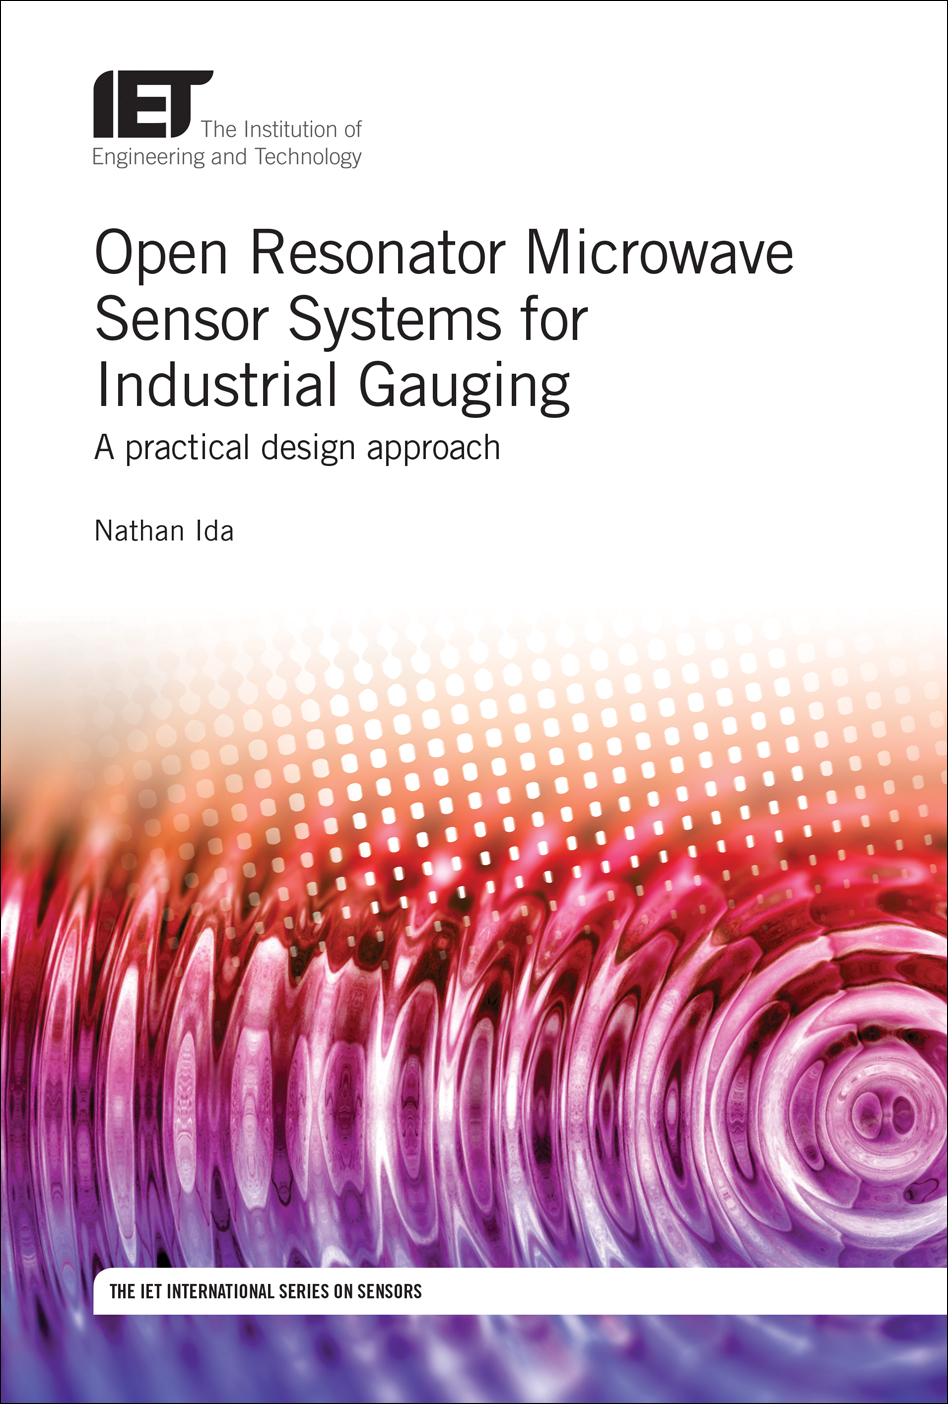 Open Resonator Microwave Sensor Systems for Industrial Gauging, A practical design approach